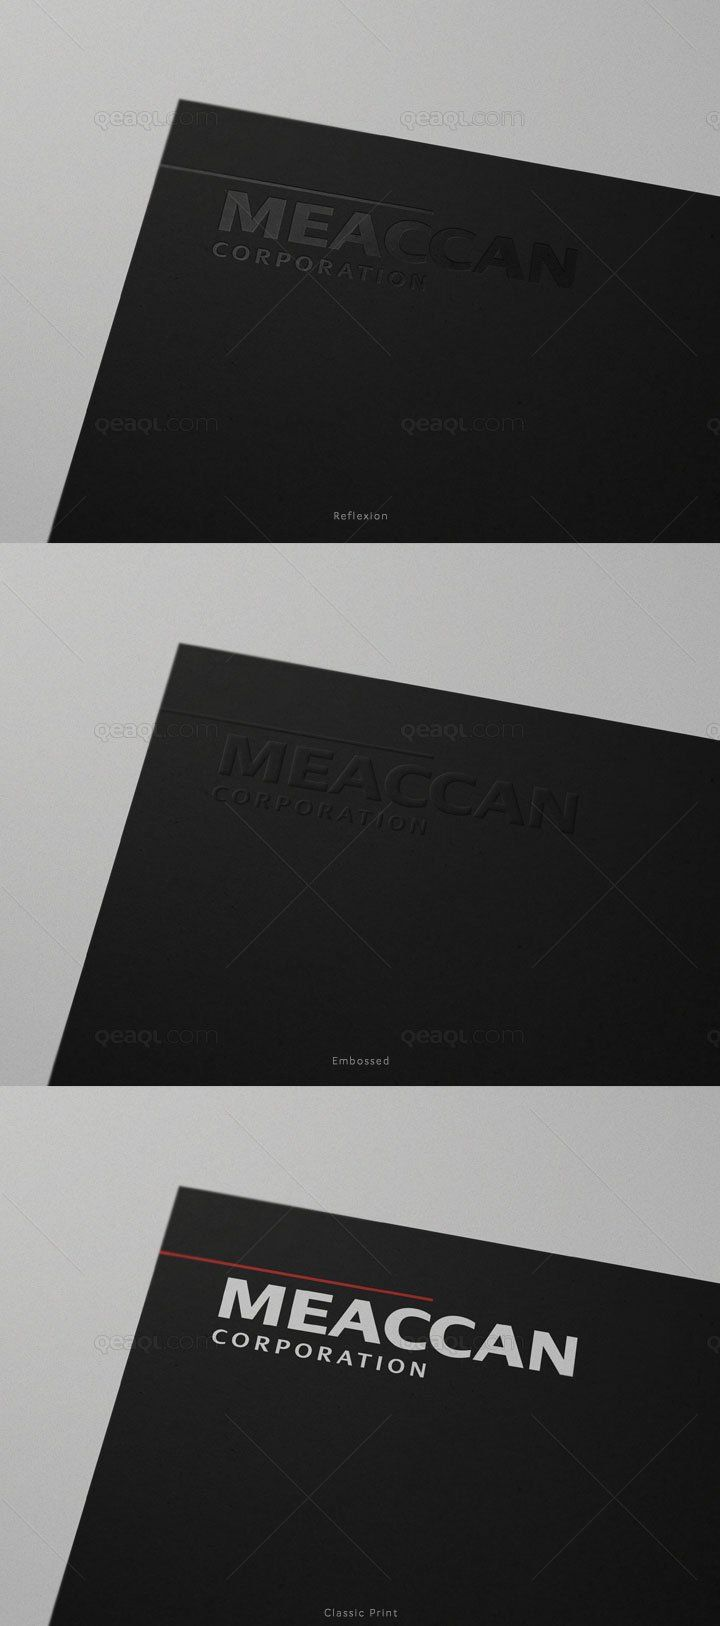 874fa76ac79 Free mockup of a logo in a black paper. Download this psd from the original  source of Qeaql. Amaze your fellow designers and add your own design into  this ...